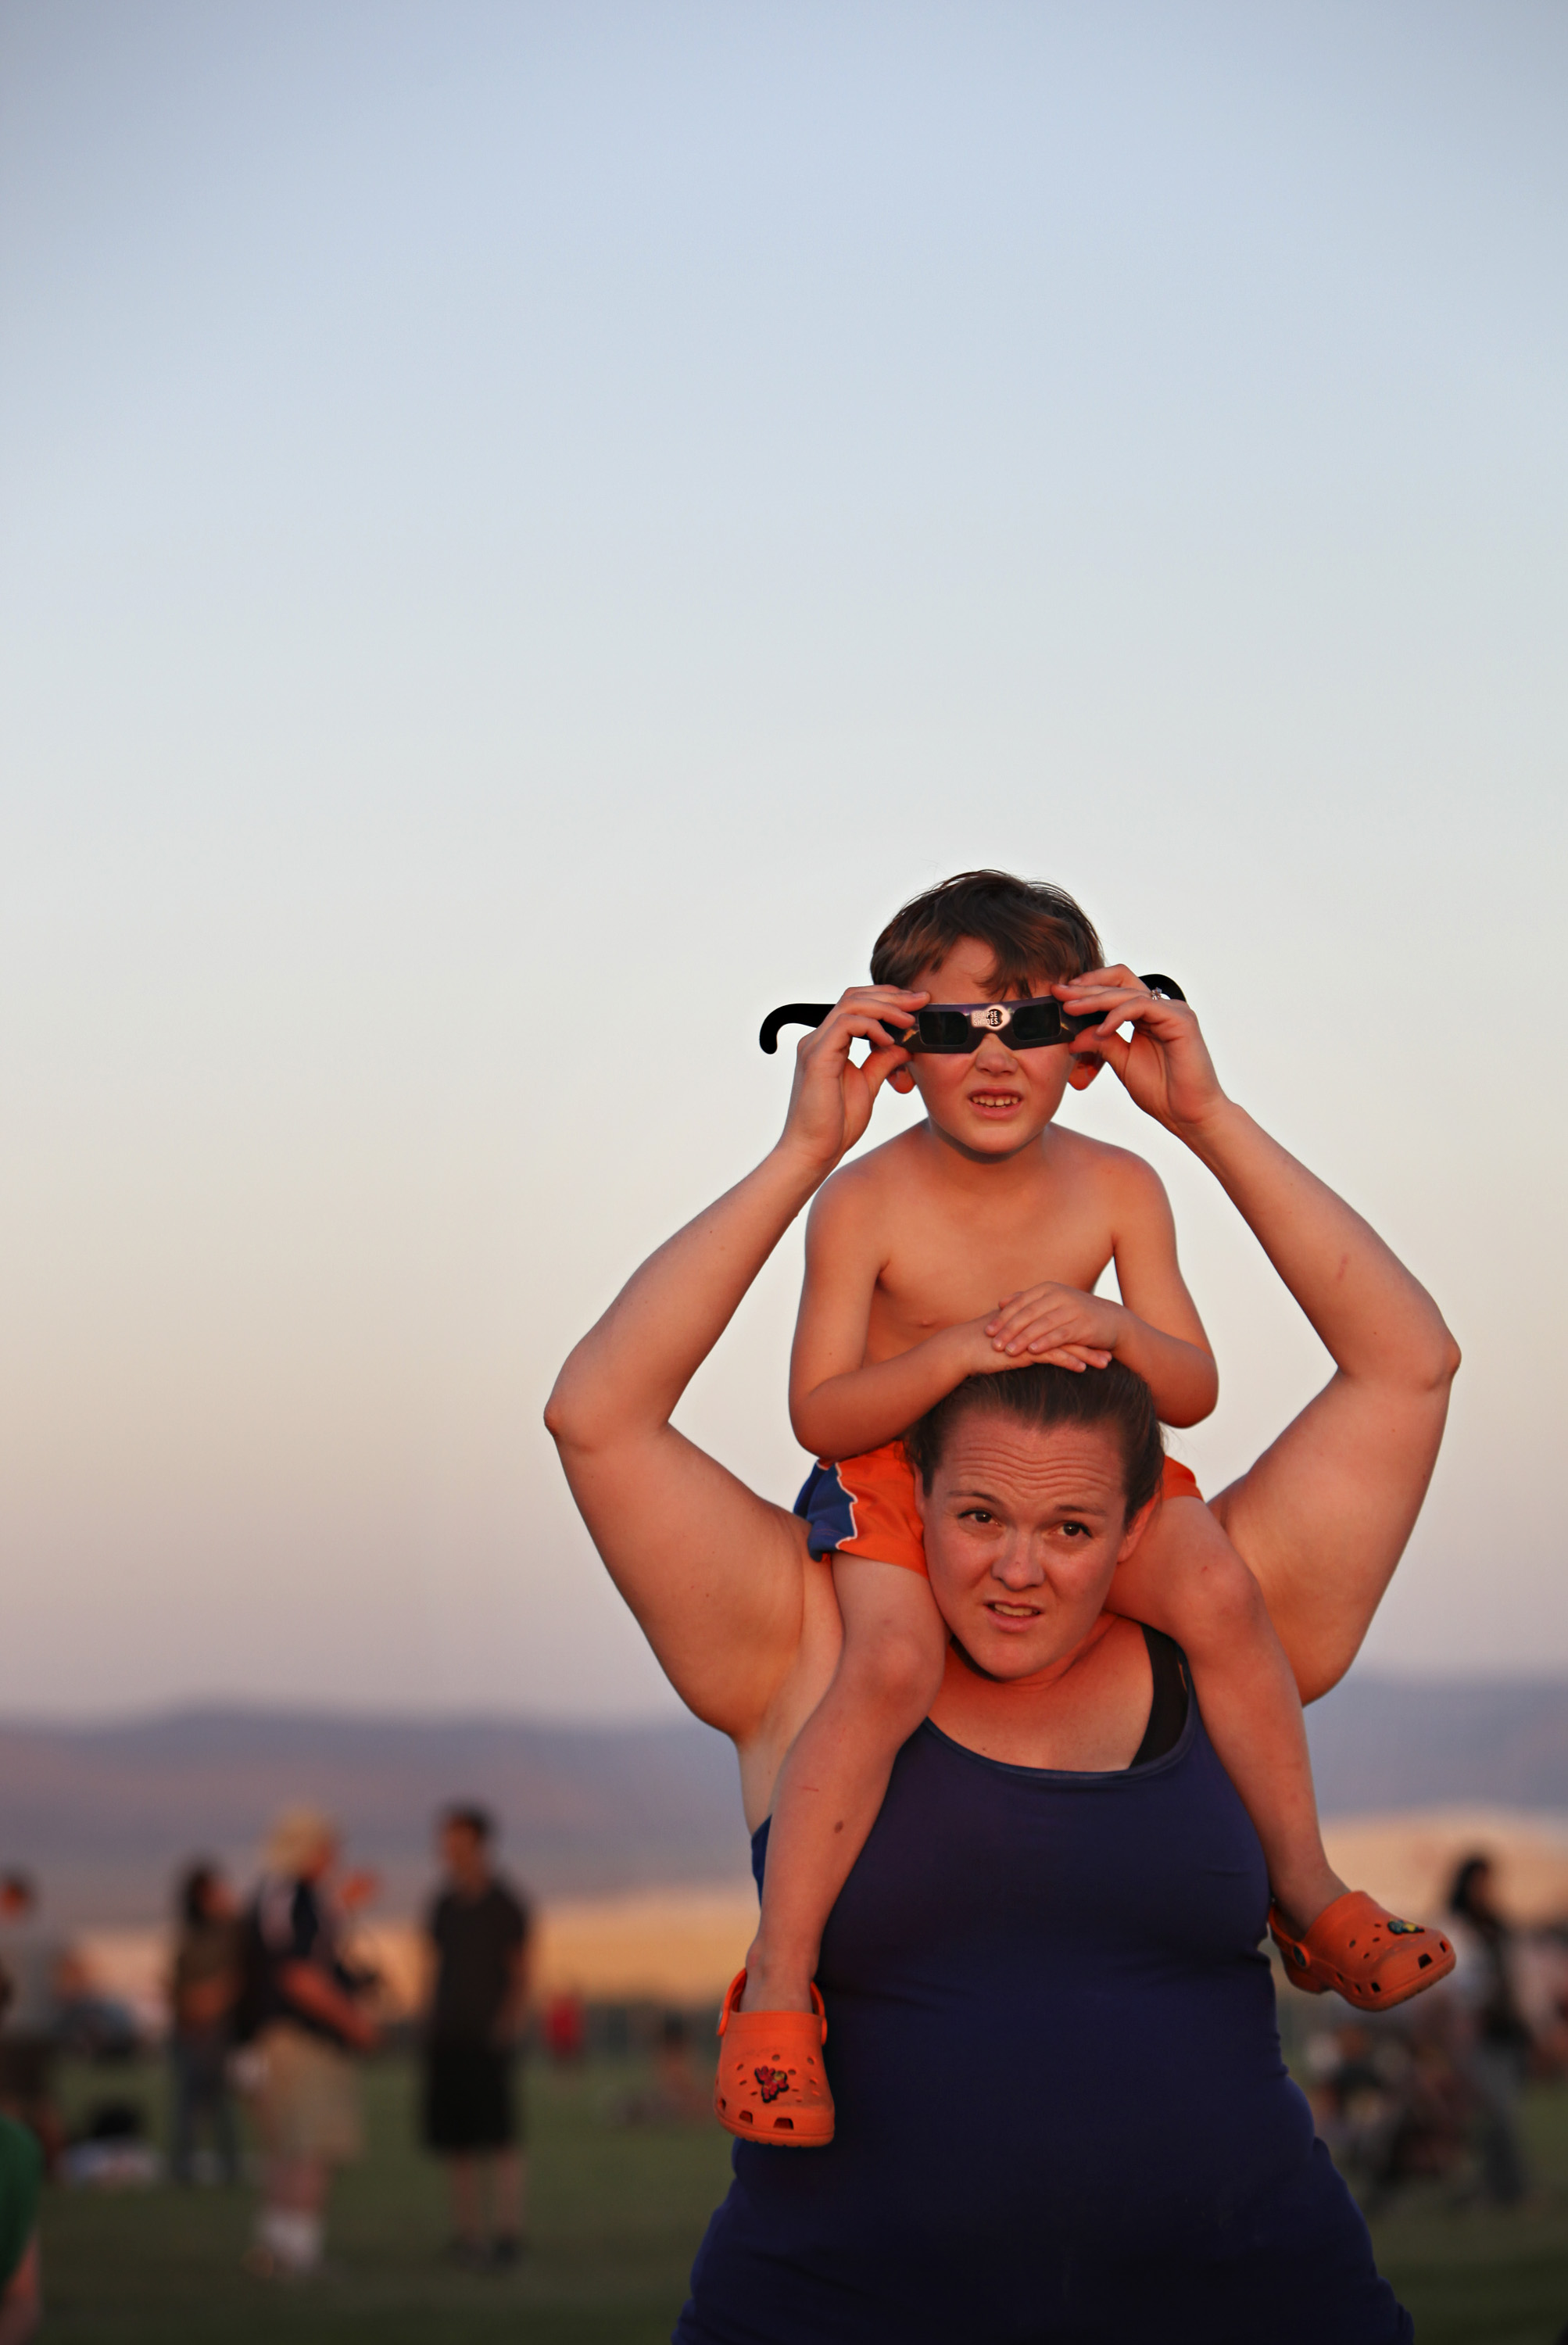 Jaxon Wright, 4, looks at the annular solar eclipse through special glasses while sitting on his mother, Tiffany Wright's, shoulders during the viewing party near the Hard Rock Casino Presents the Pavilion, Sunday, May 20, 2012, in Albuquerque, NM. (Morgan Petroski/Albuquerque Journal)